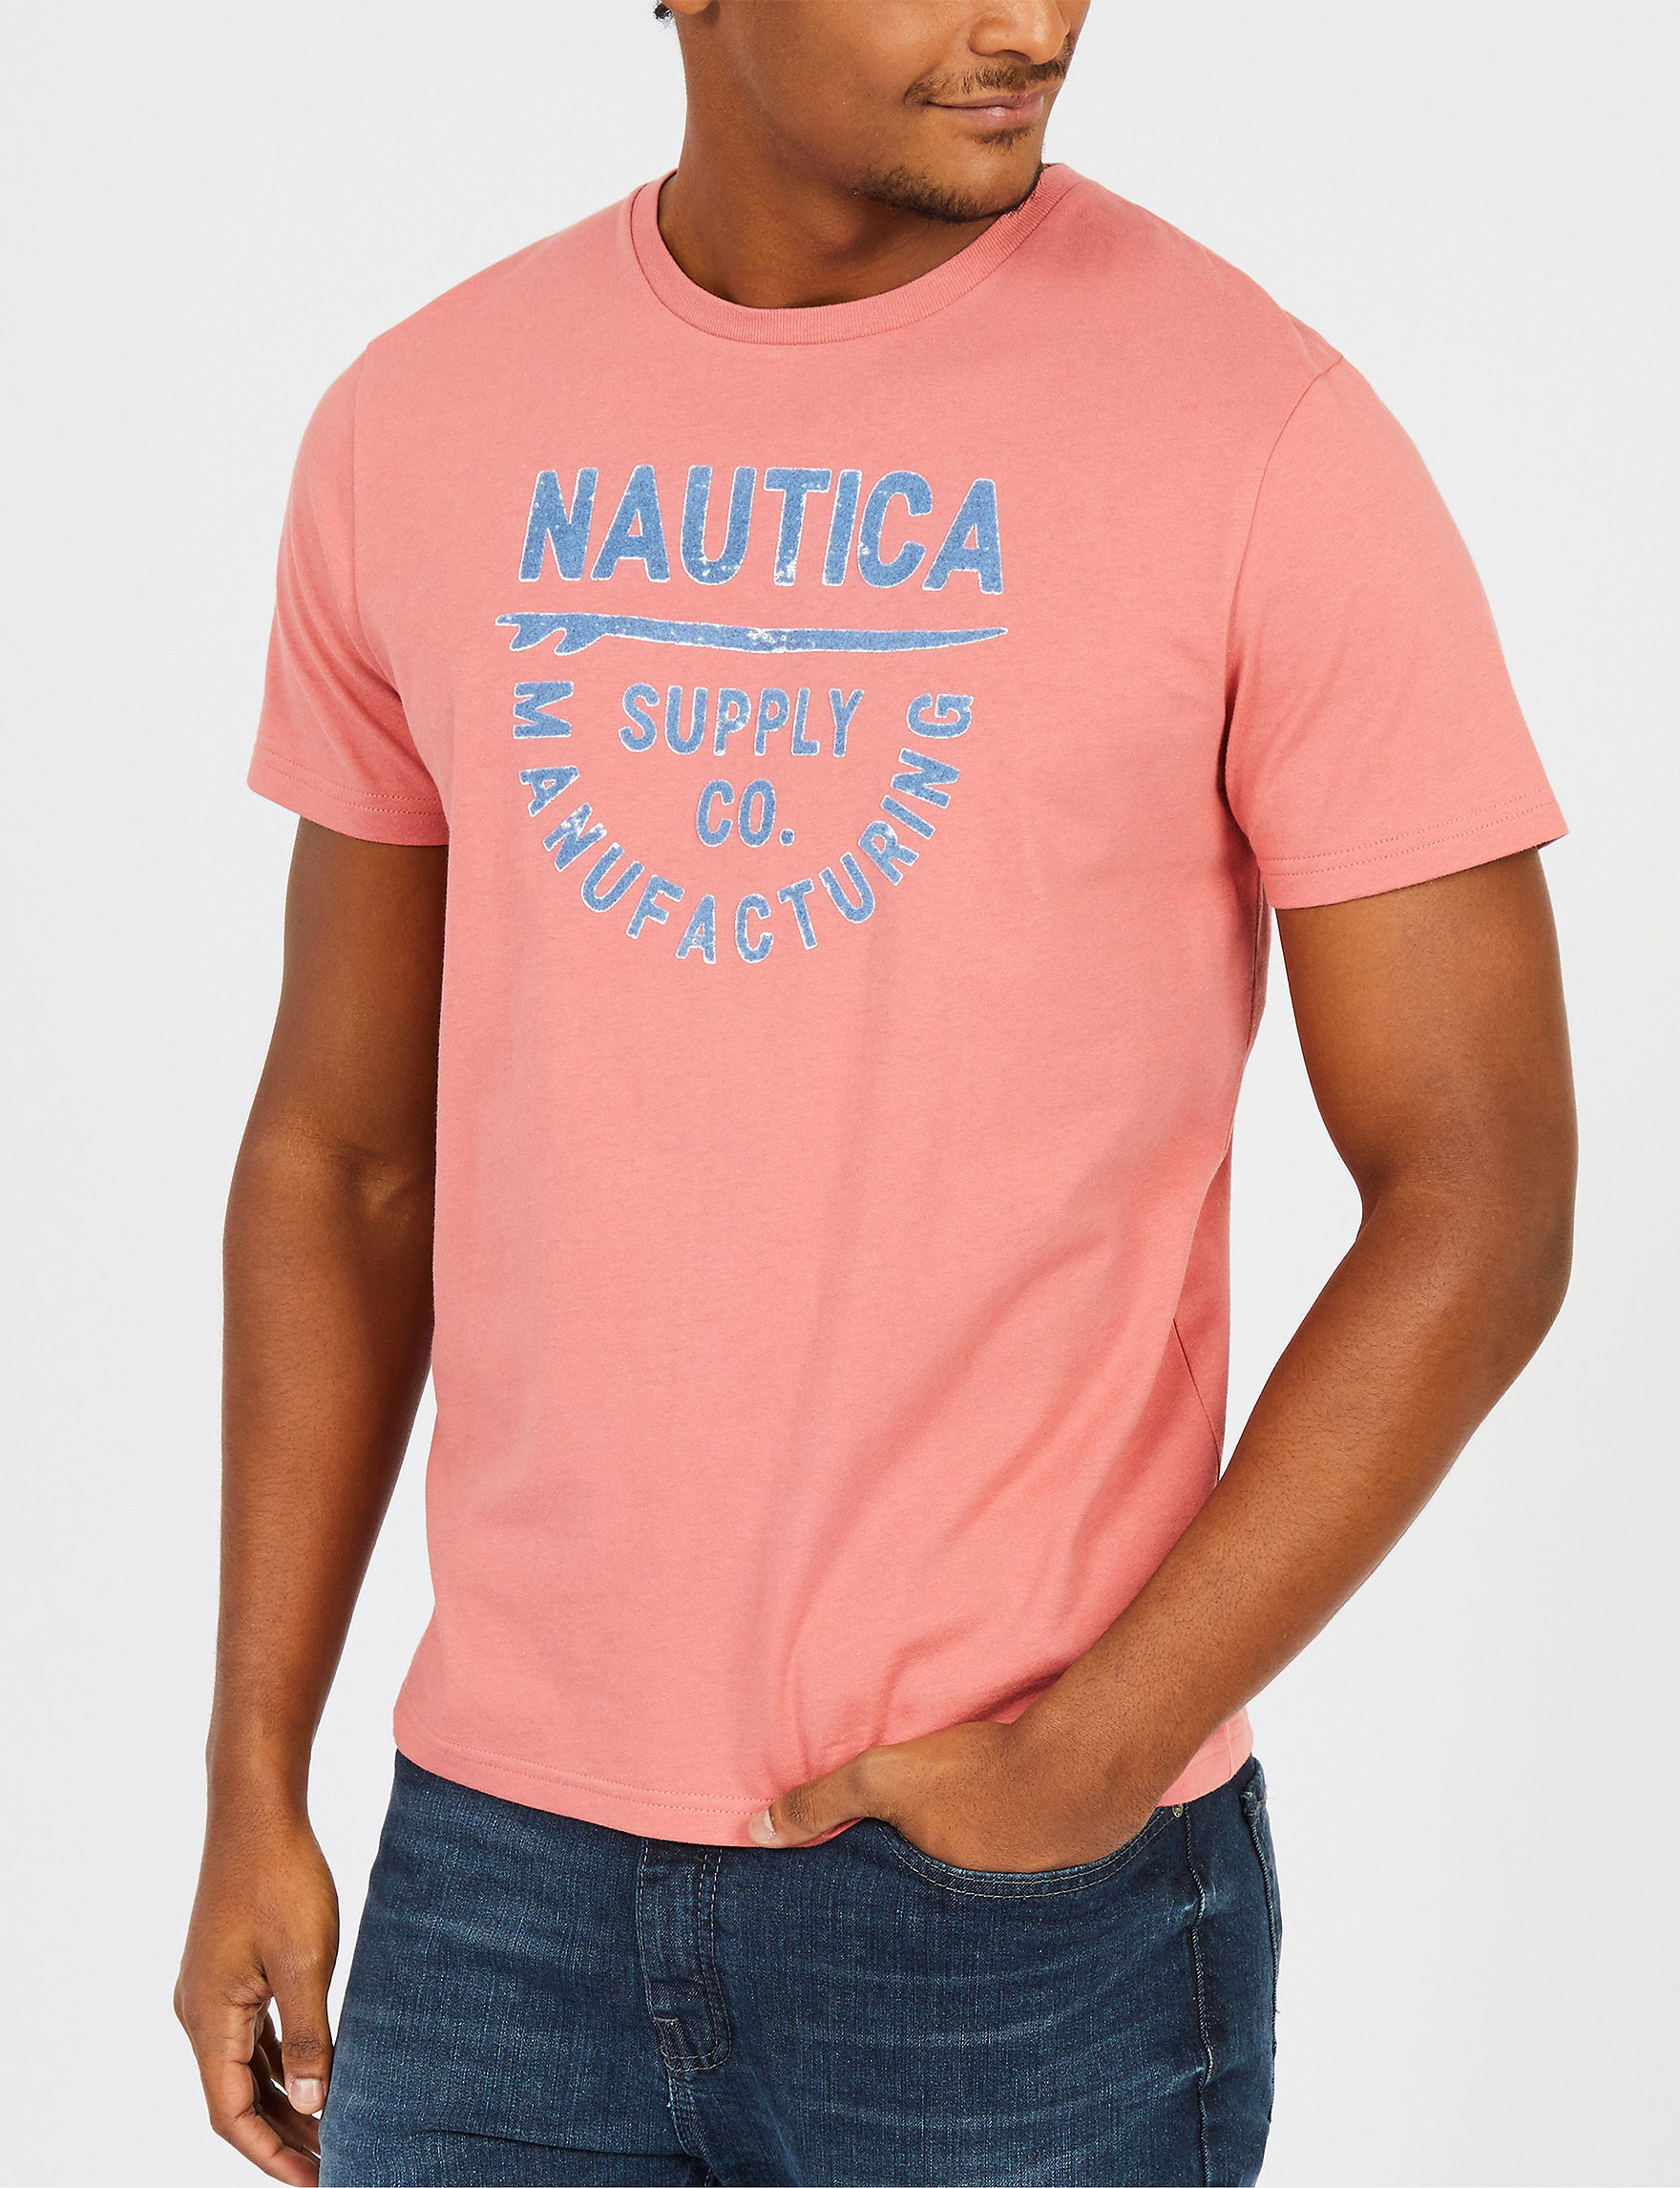 Nautica Orange Tees & Tanks